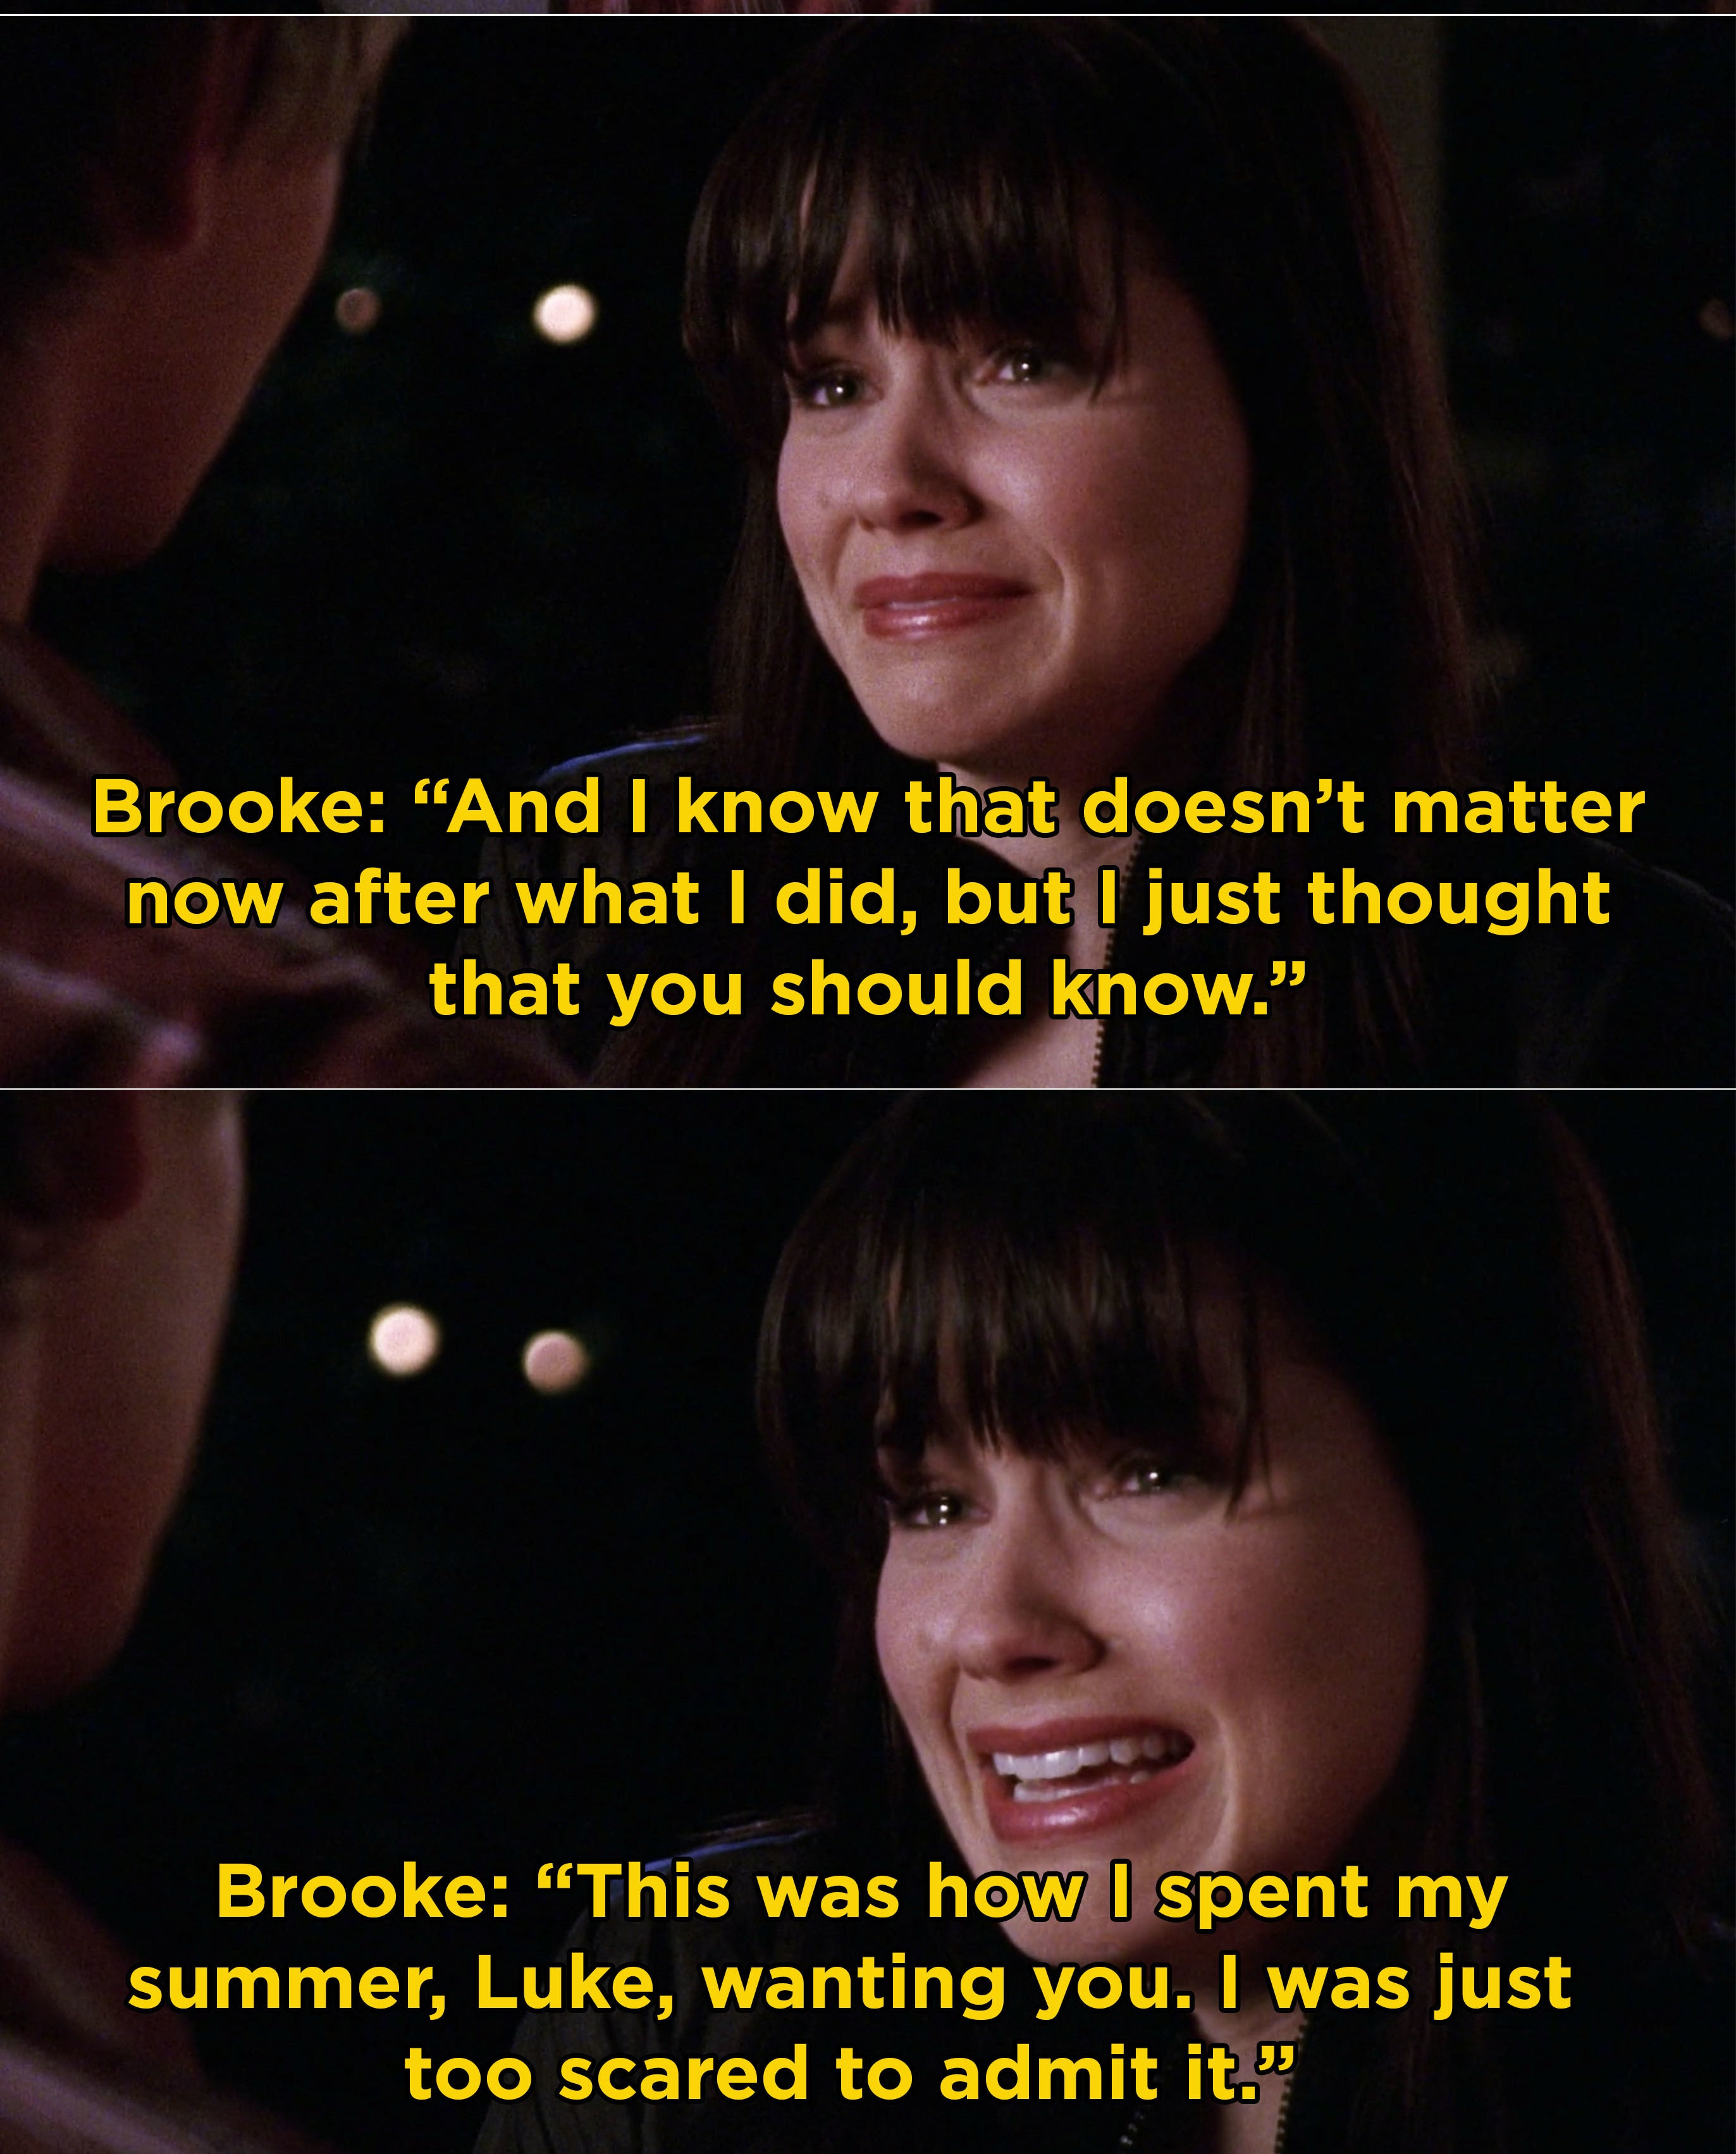 Brooke telling Lucas that she spent her summer wanting him, but was too scared to admit it